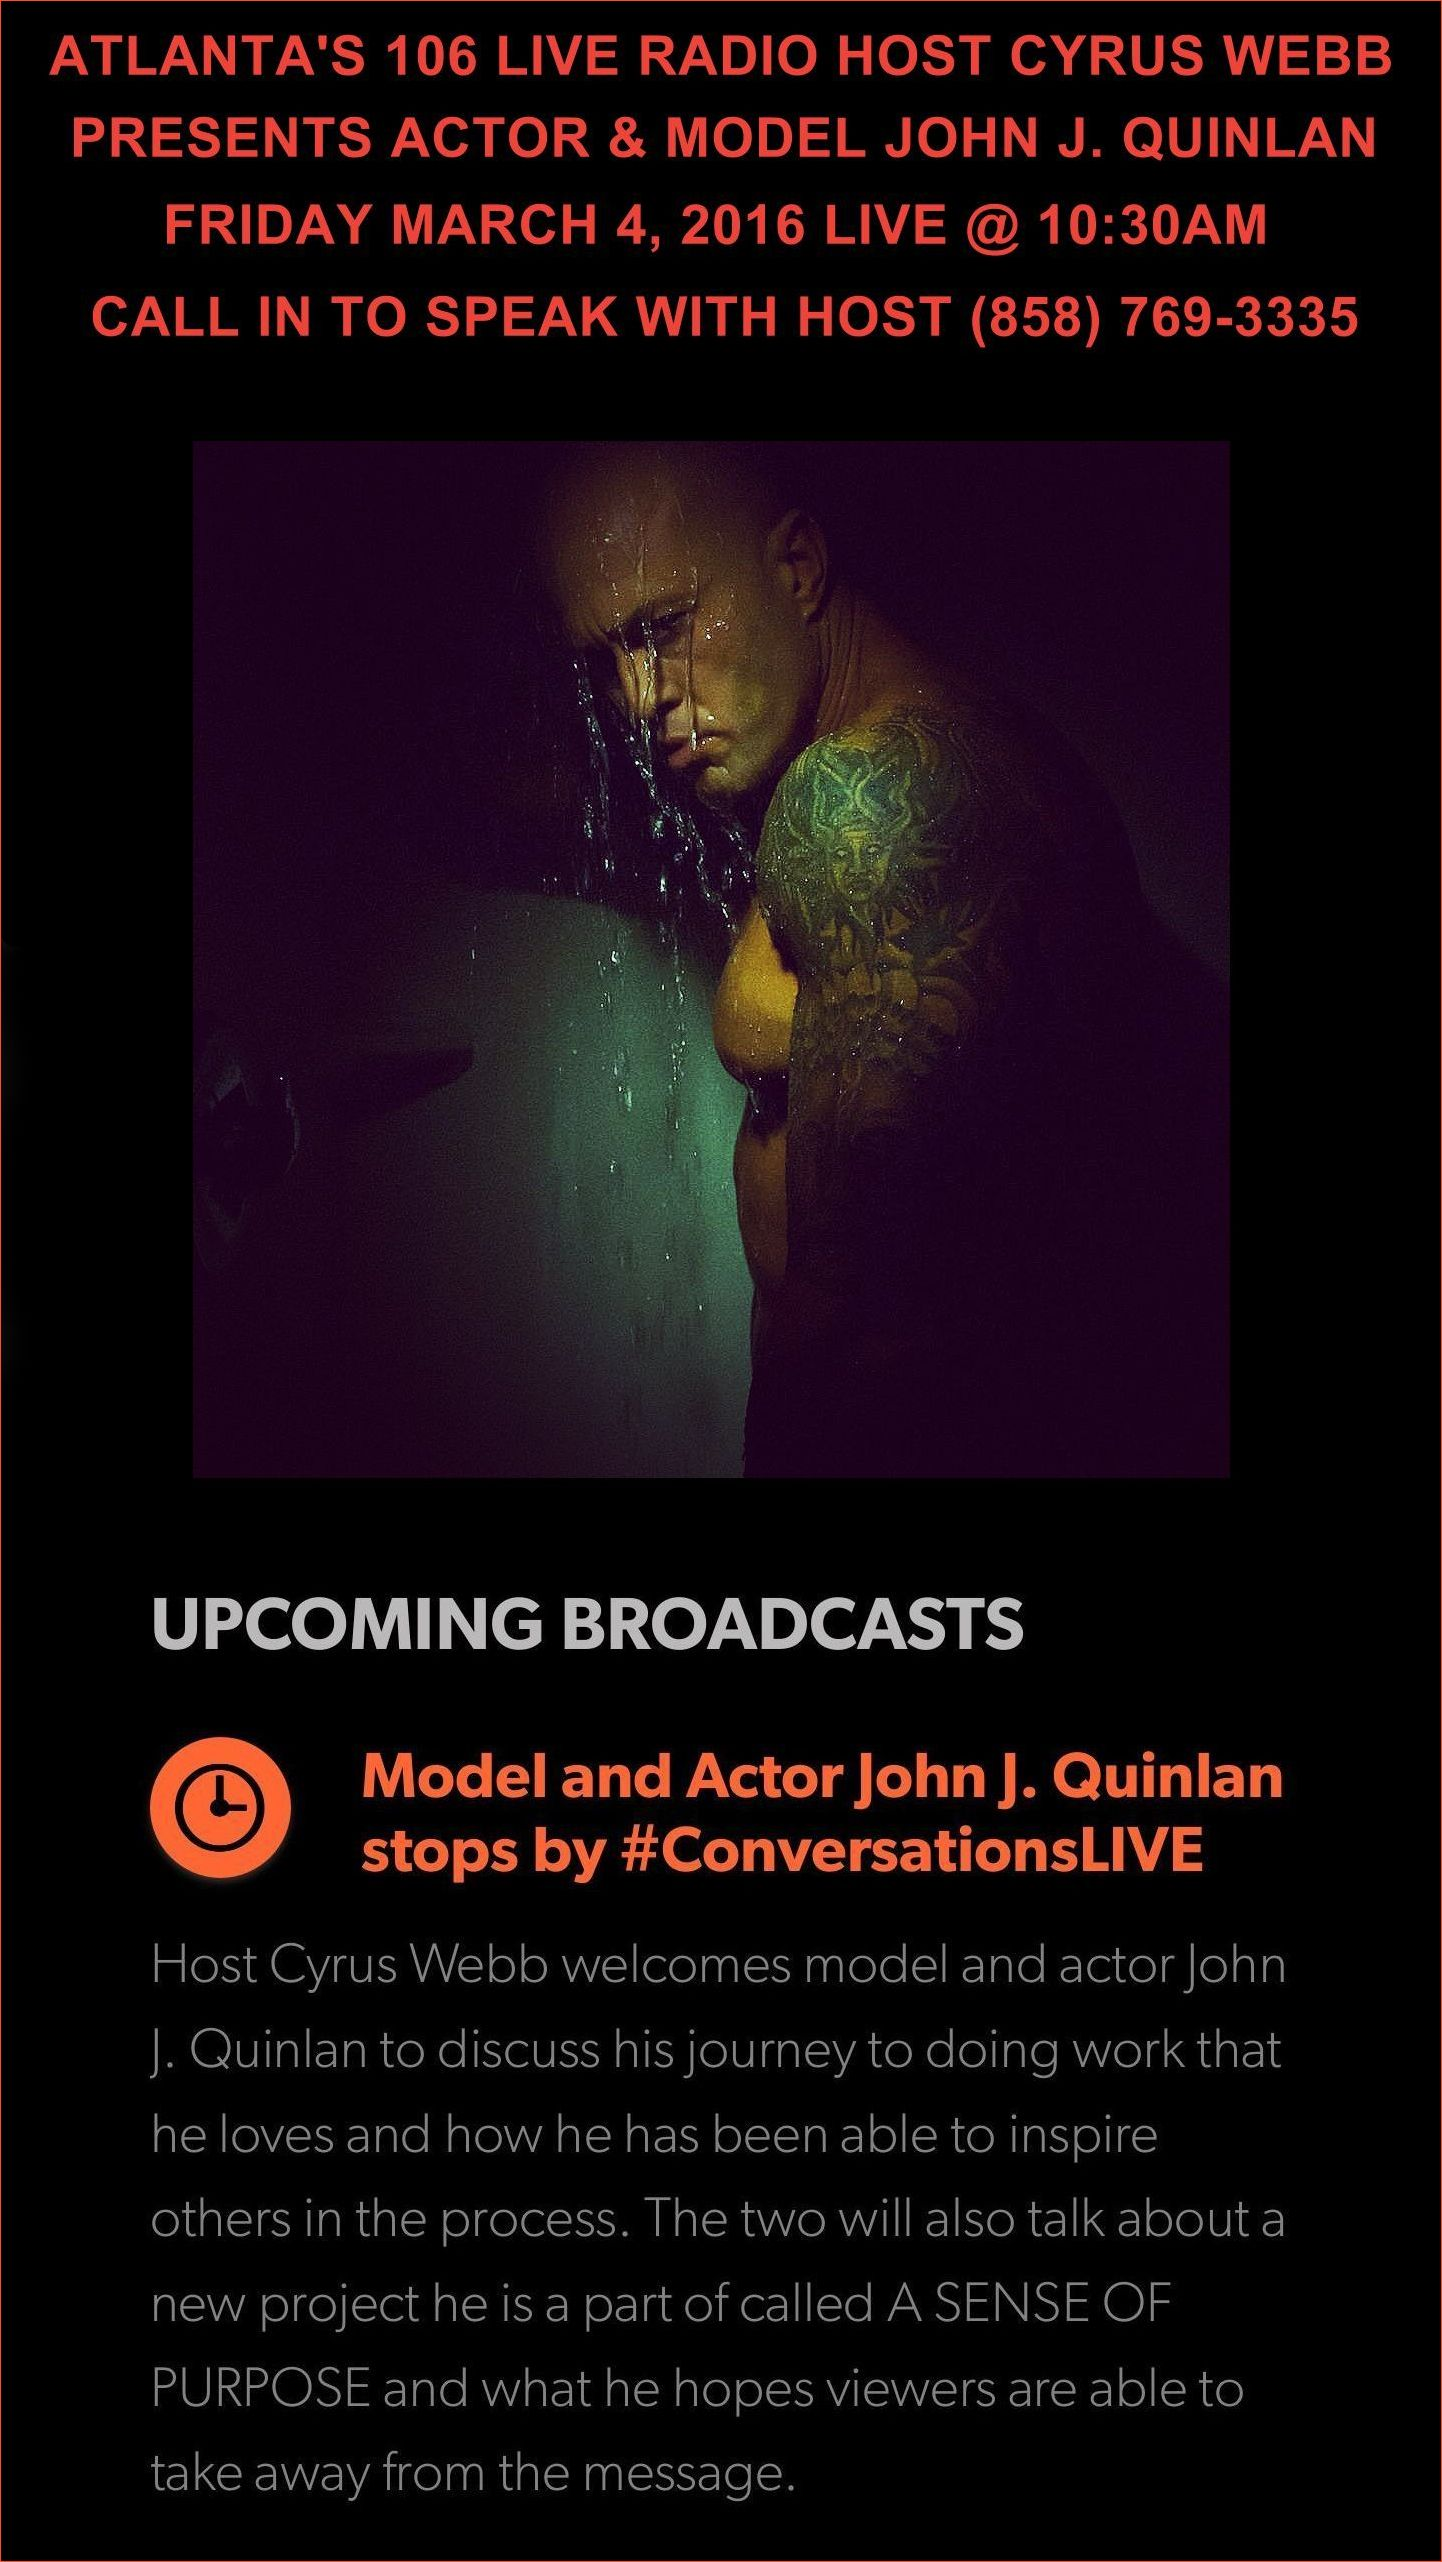 Model & Actor John Joseph Quinlan with Cyrus Webb Conversations Live #JohnQuinlan